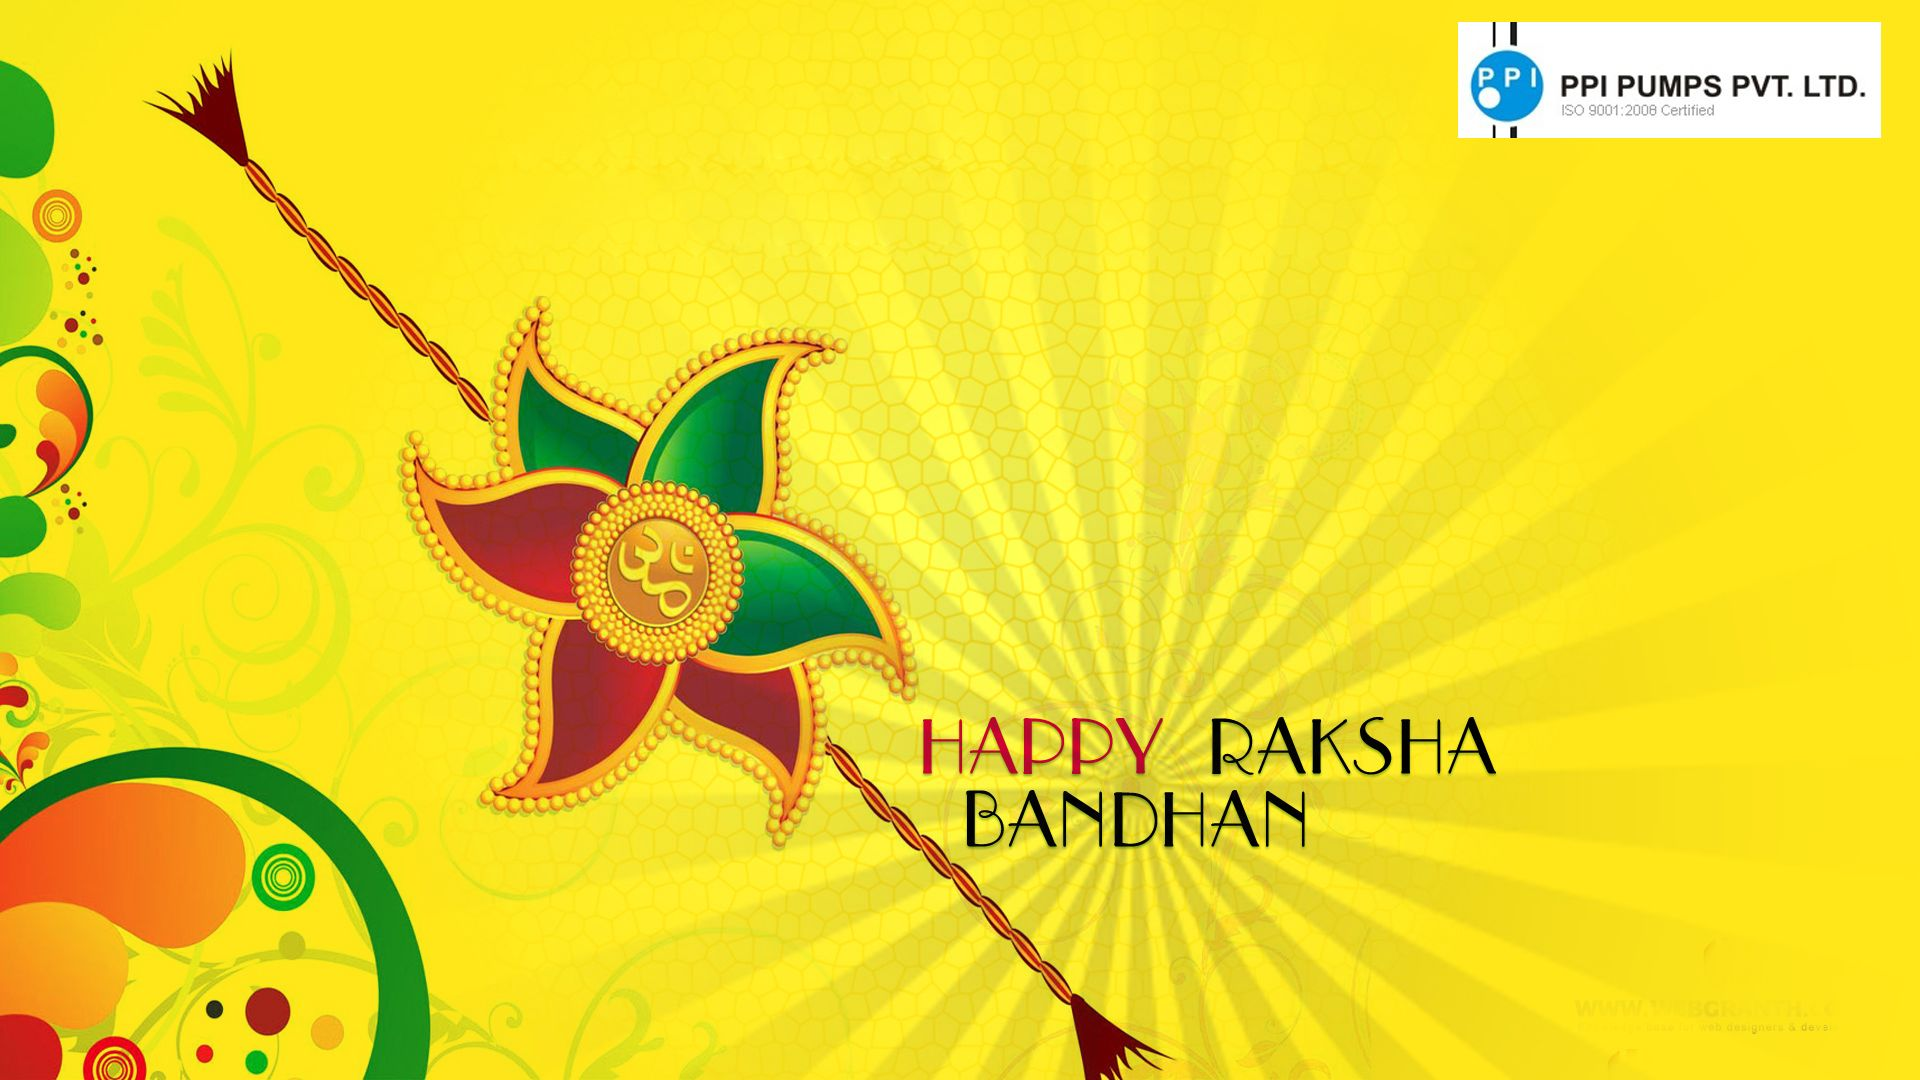 """May this auspicious occasion bring you all the prosperity and good luck in your way of life. """"Happy Raksha Bandhan"""""""